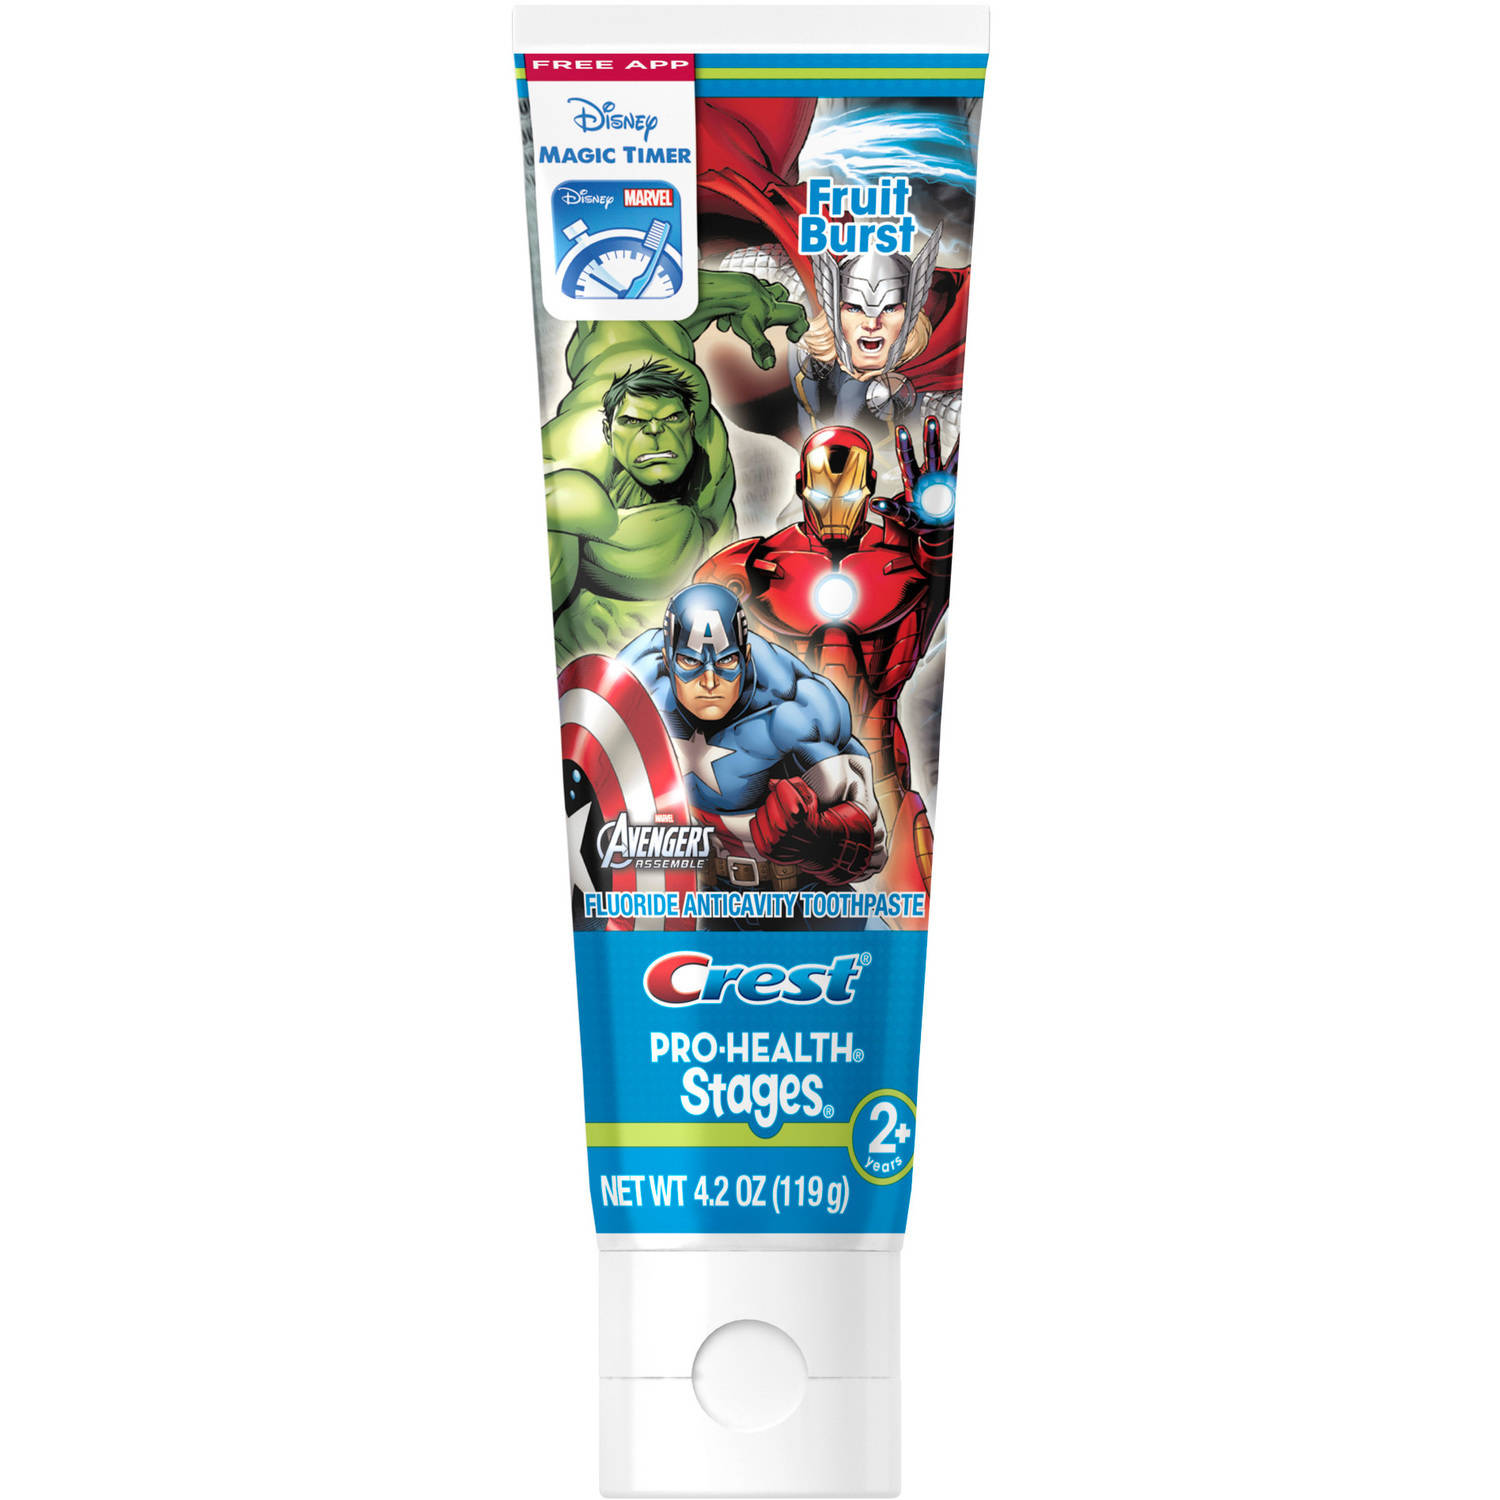 Crest Pro-Health Stages 2+ Marvel Avengers Assemble Fruit Burst Toothpaste, 4.2 oz